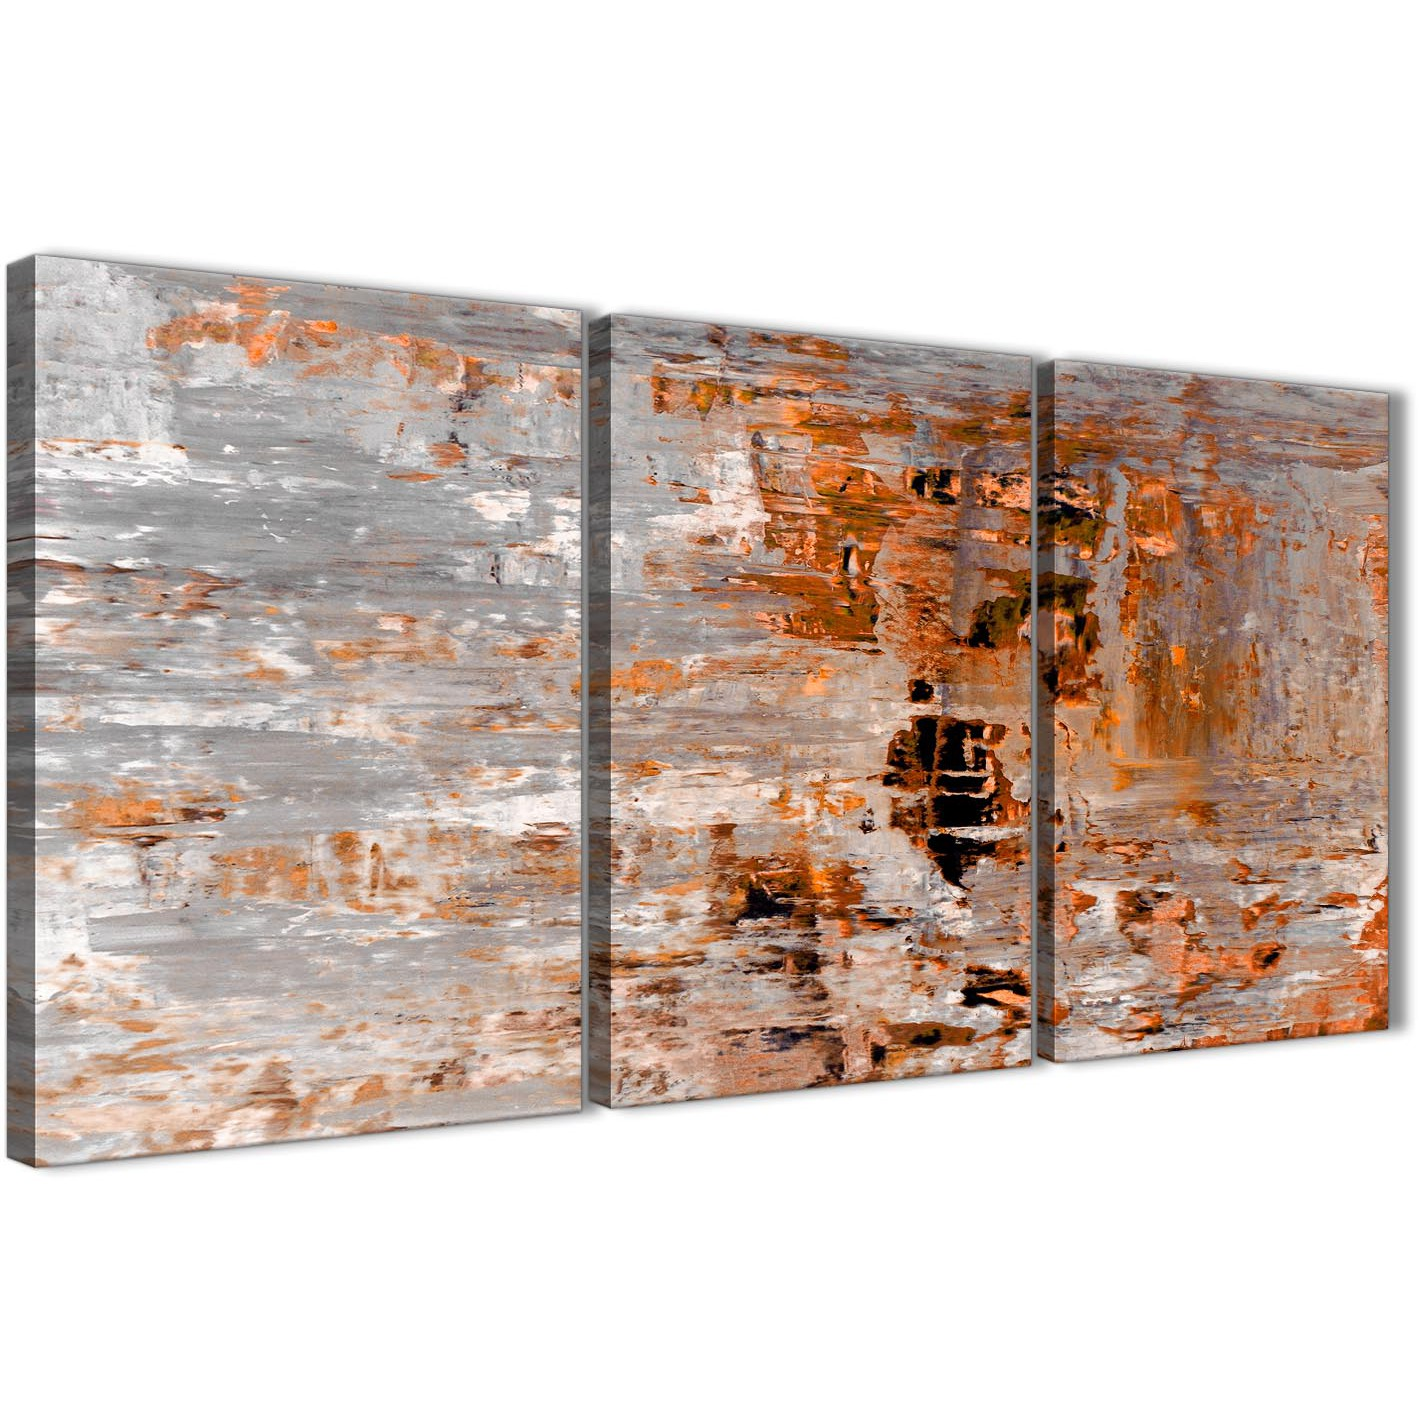 3 Panel Burnt Orange Grey Painting Dining Room Canvas Wall Art Decor